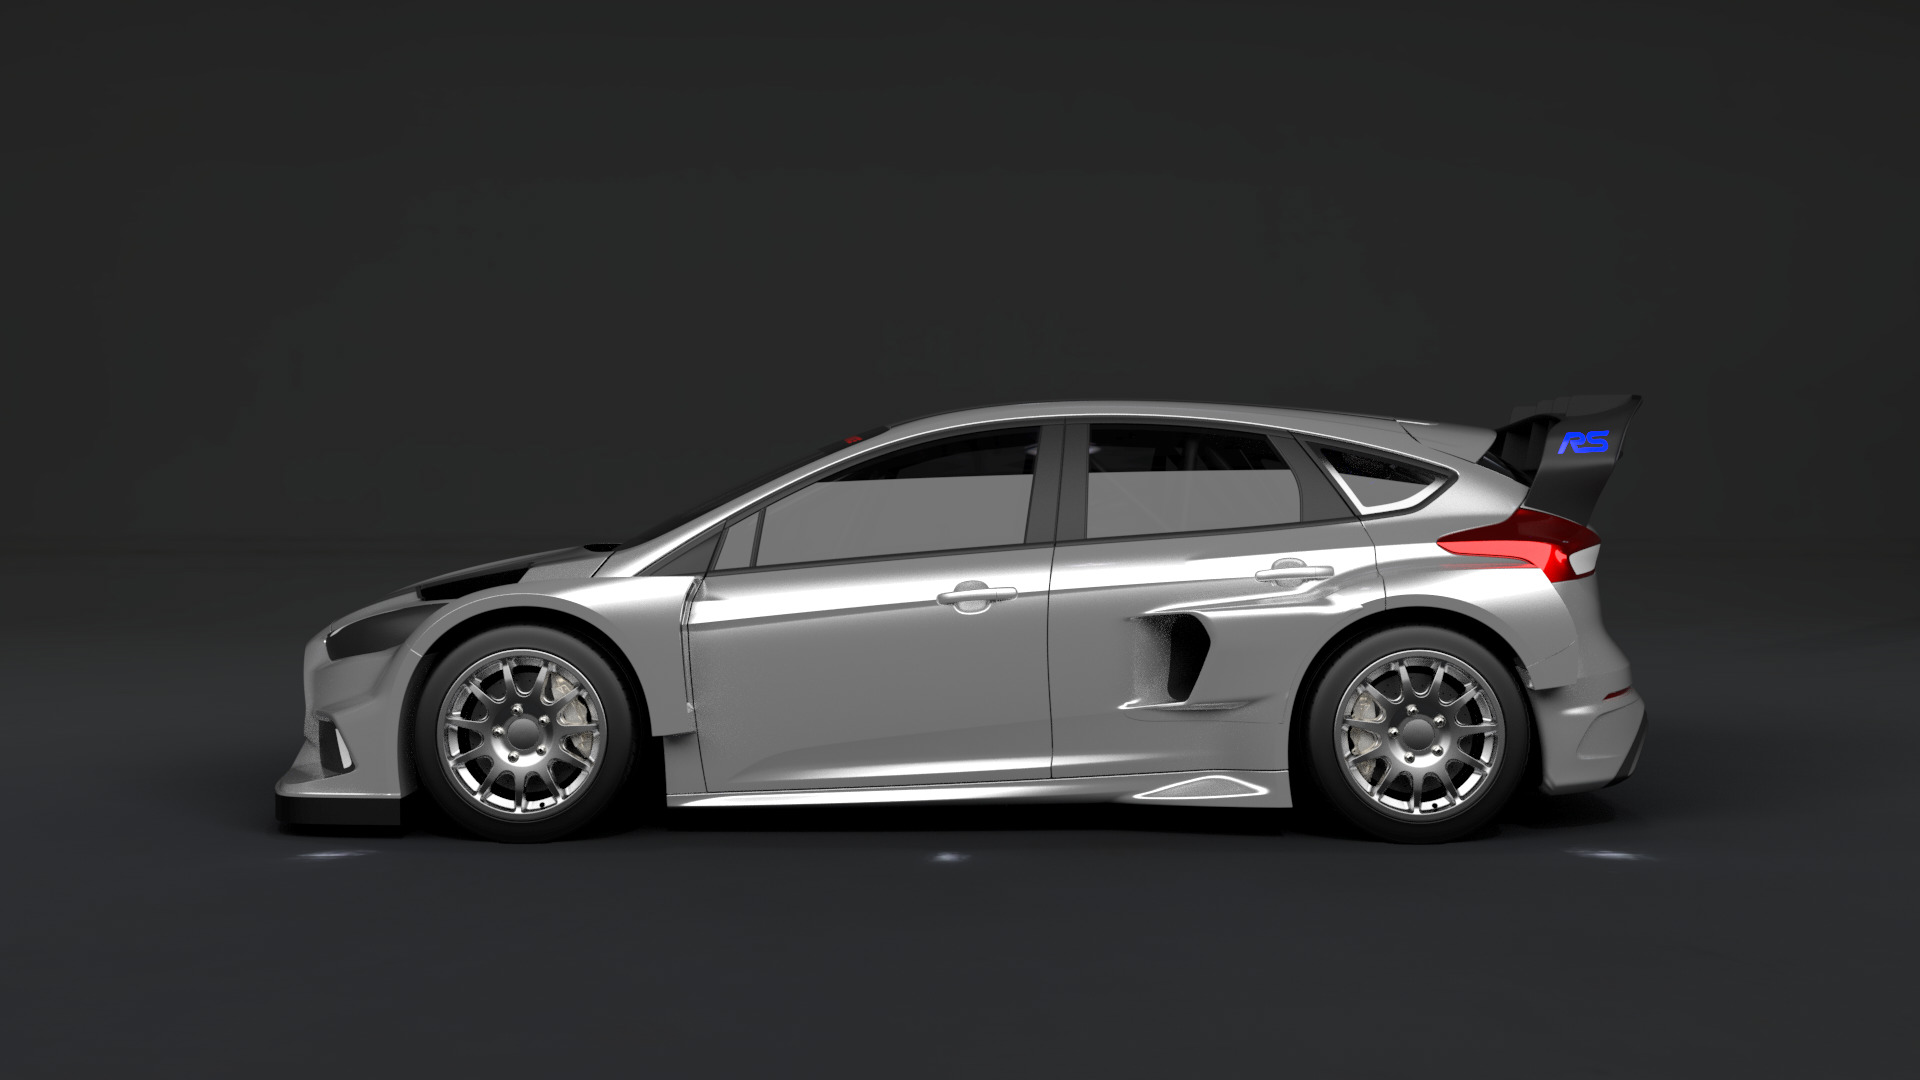 Ford Focus Rs Rx Widebody Side